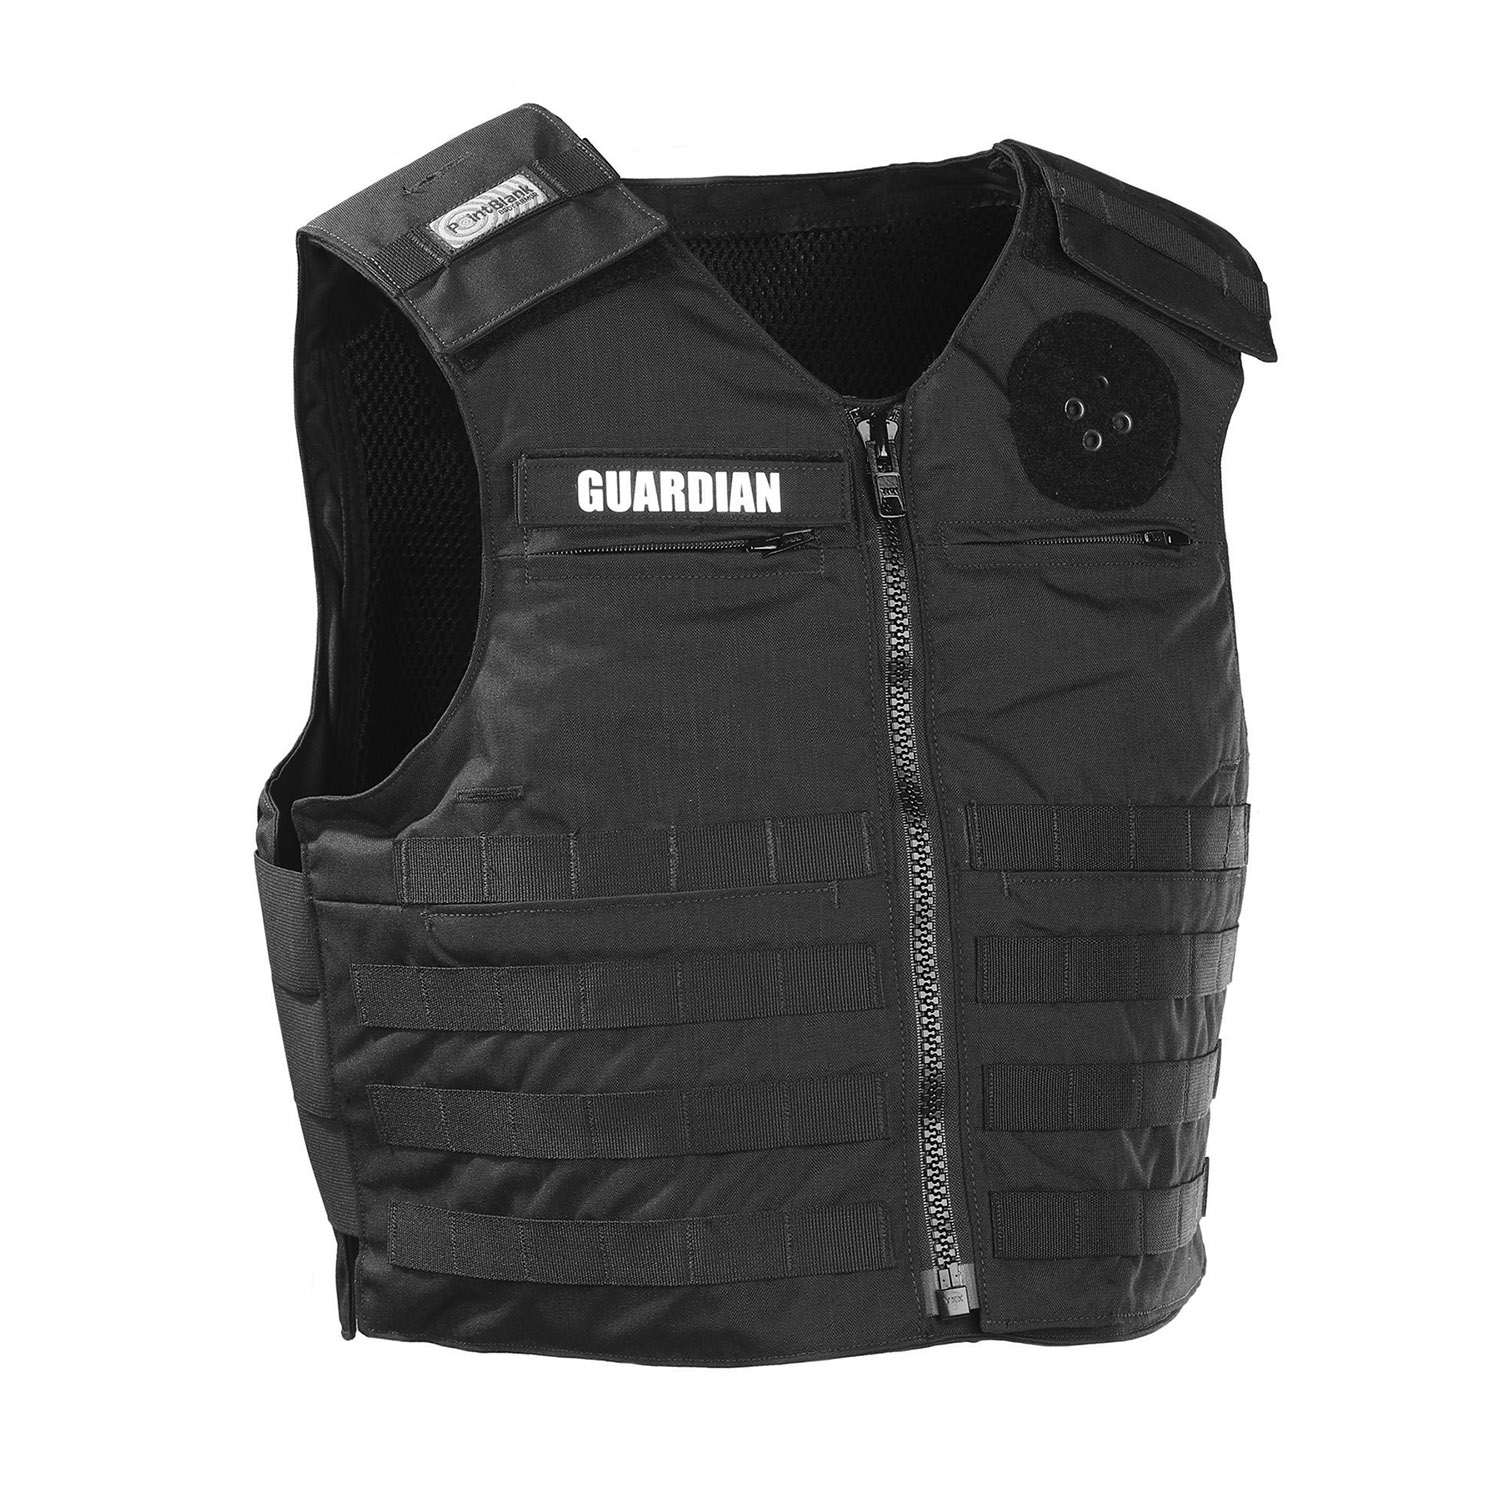 Point Blank Guardian Ballistic Vest Carrier